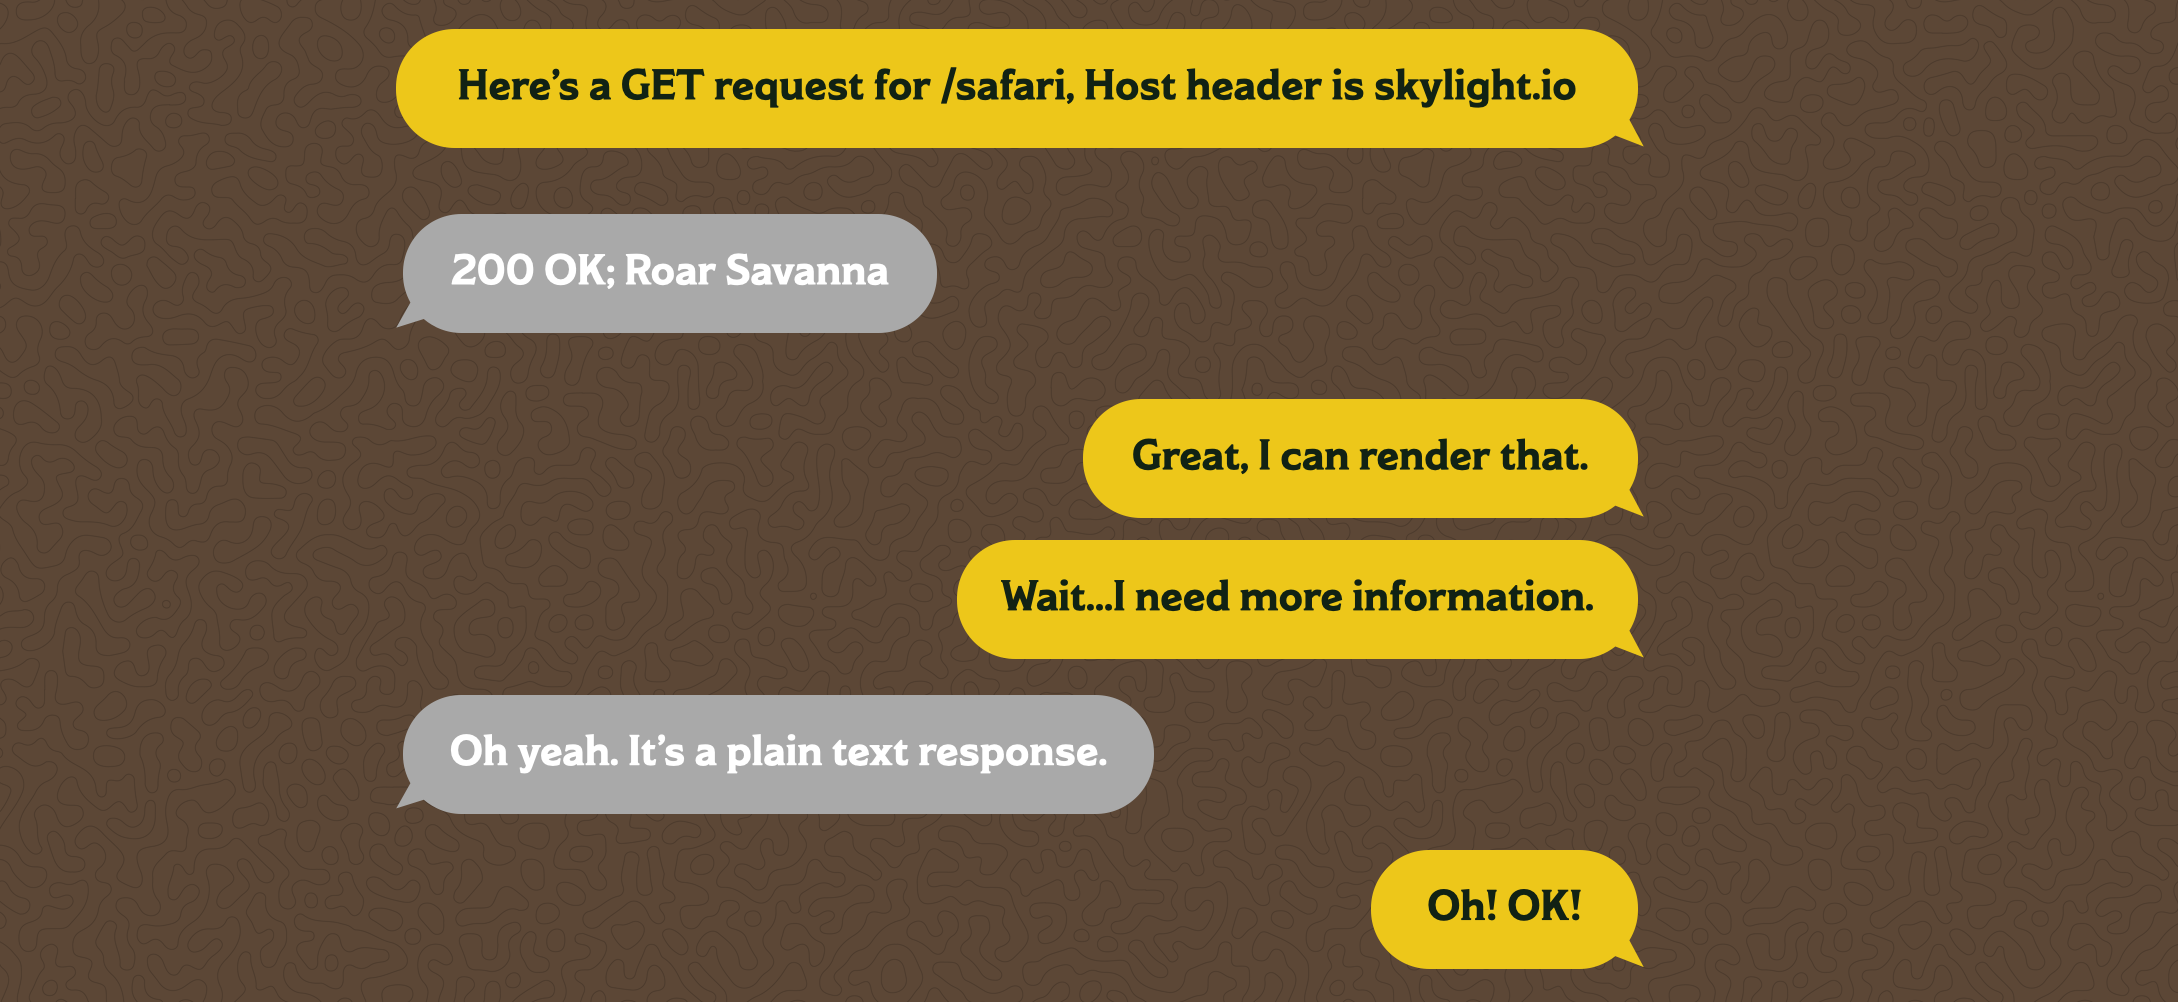 "A text message chain between a browser and a server. The browser says ""Here's a GET request for /safari, Host header is skylight.io"" The server responds with ""200 OK; Roar Savanna?"" The browser says ""Great, I can render that."" then ""Wait...I need more information."" The server says ""Oh yeah. It's a plain text response."" to which the browser responds ""Ok! OK!"""